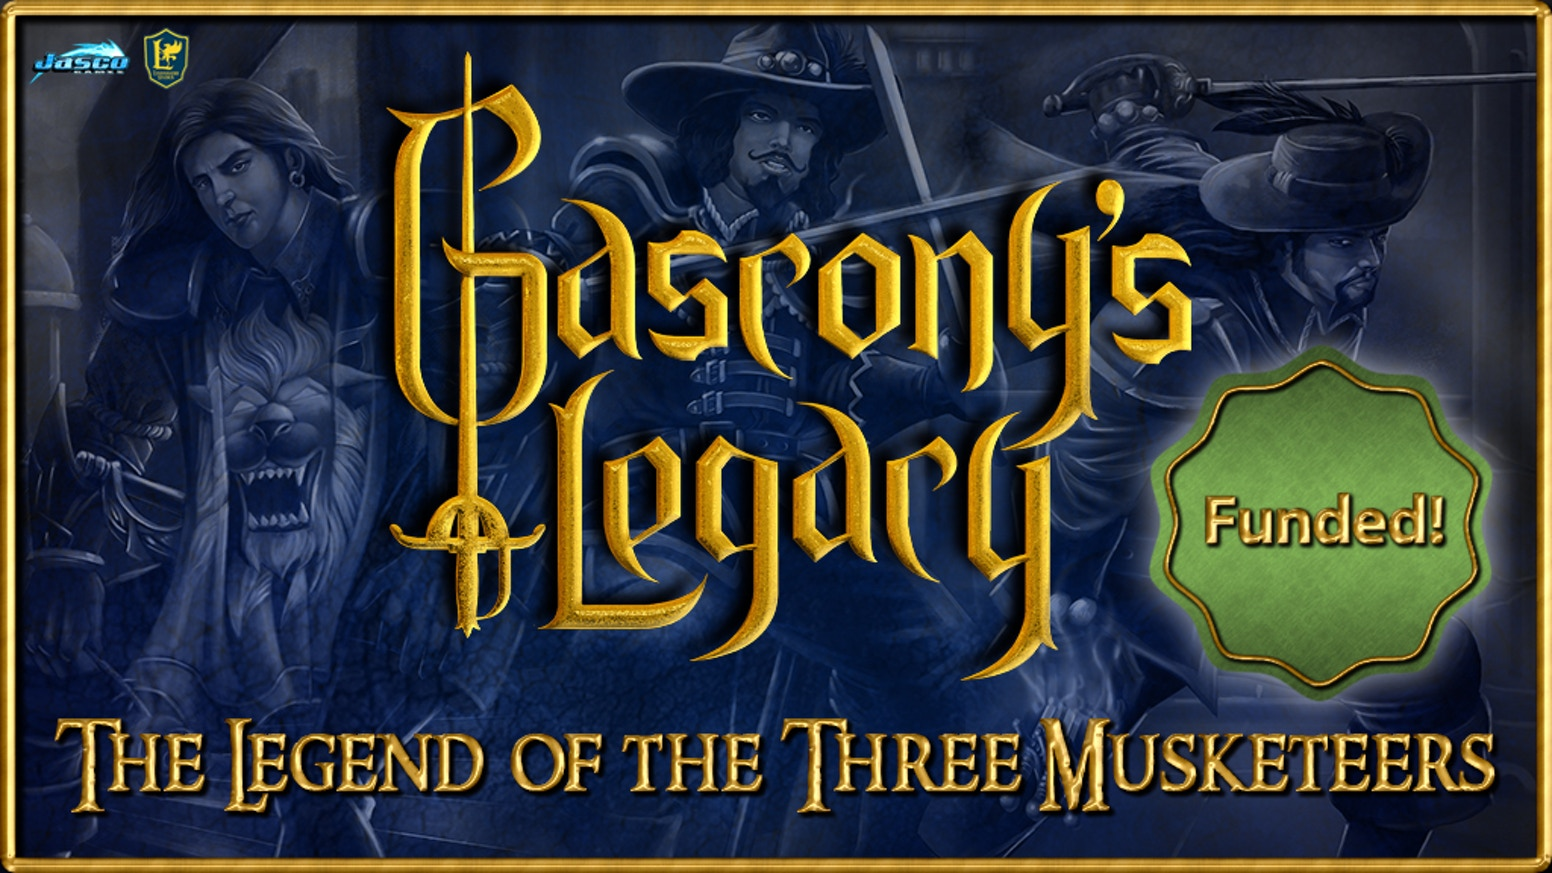 Gascony's Legacy is a 1-4 player cooperative tactics game that pits The Three Musketeers and allies against the darker side of France!